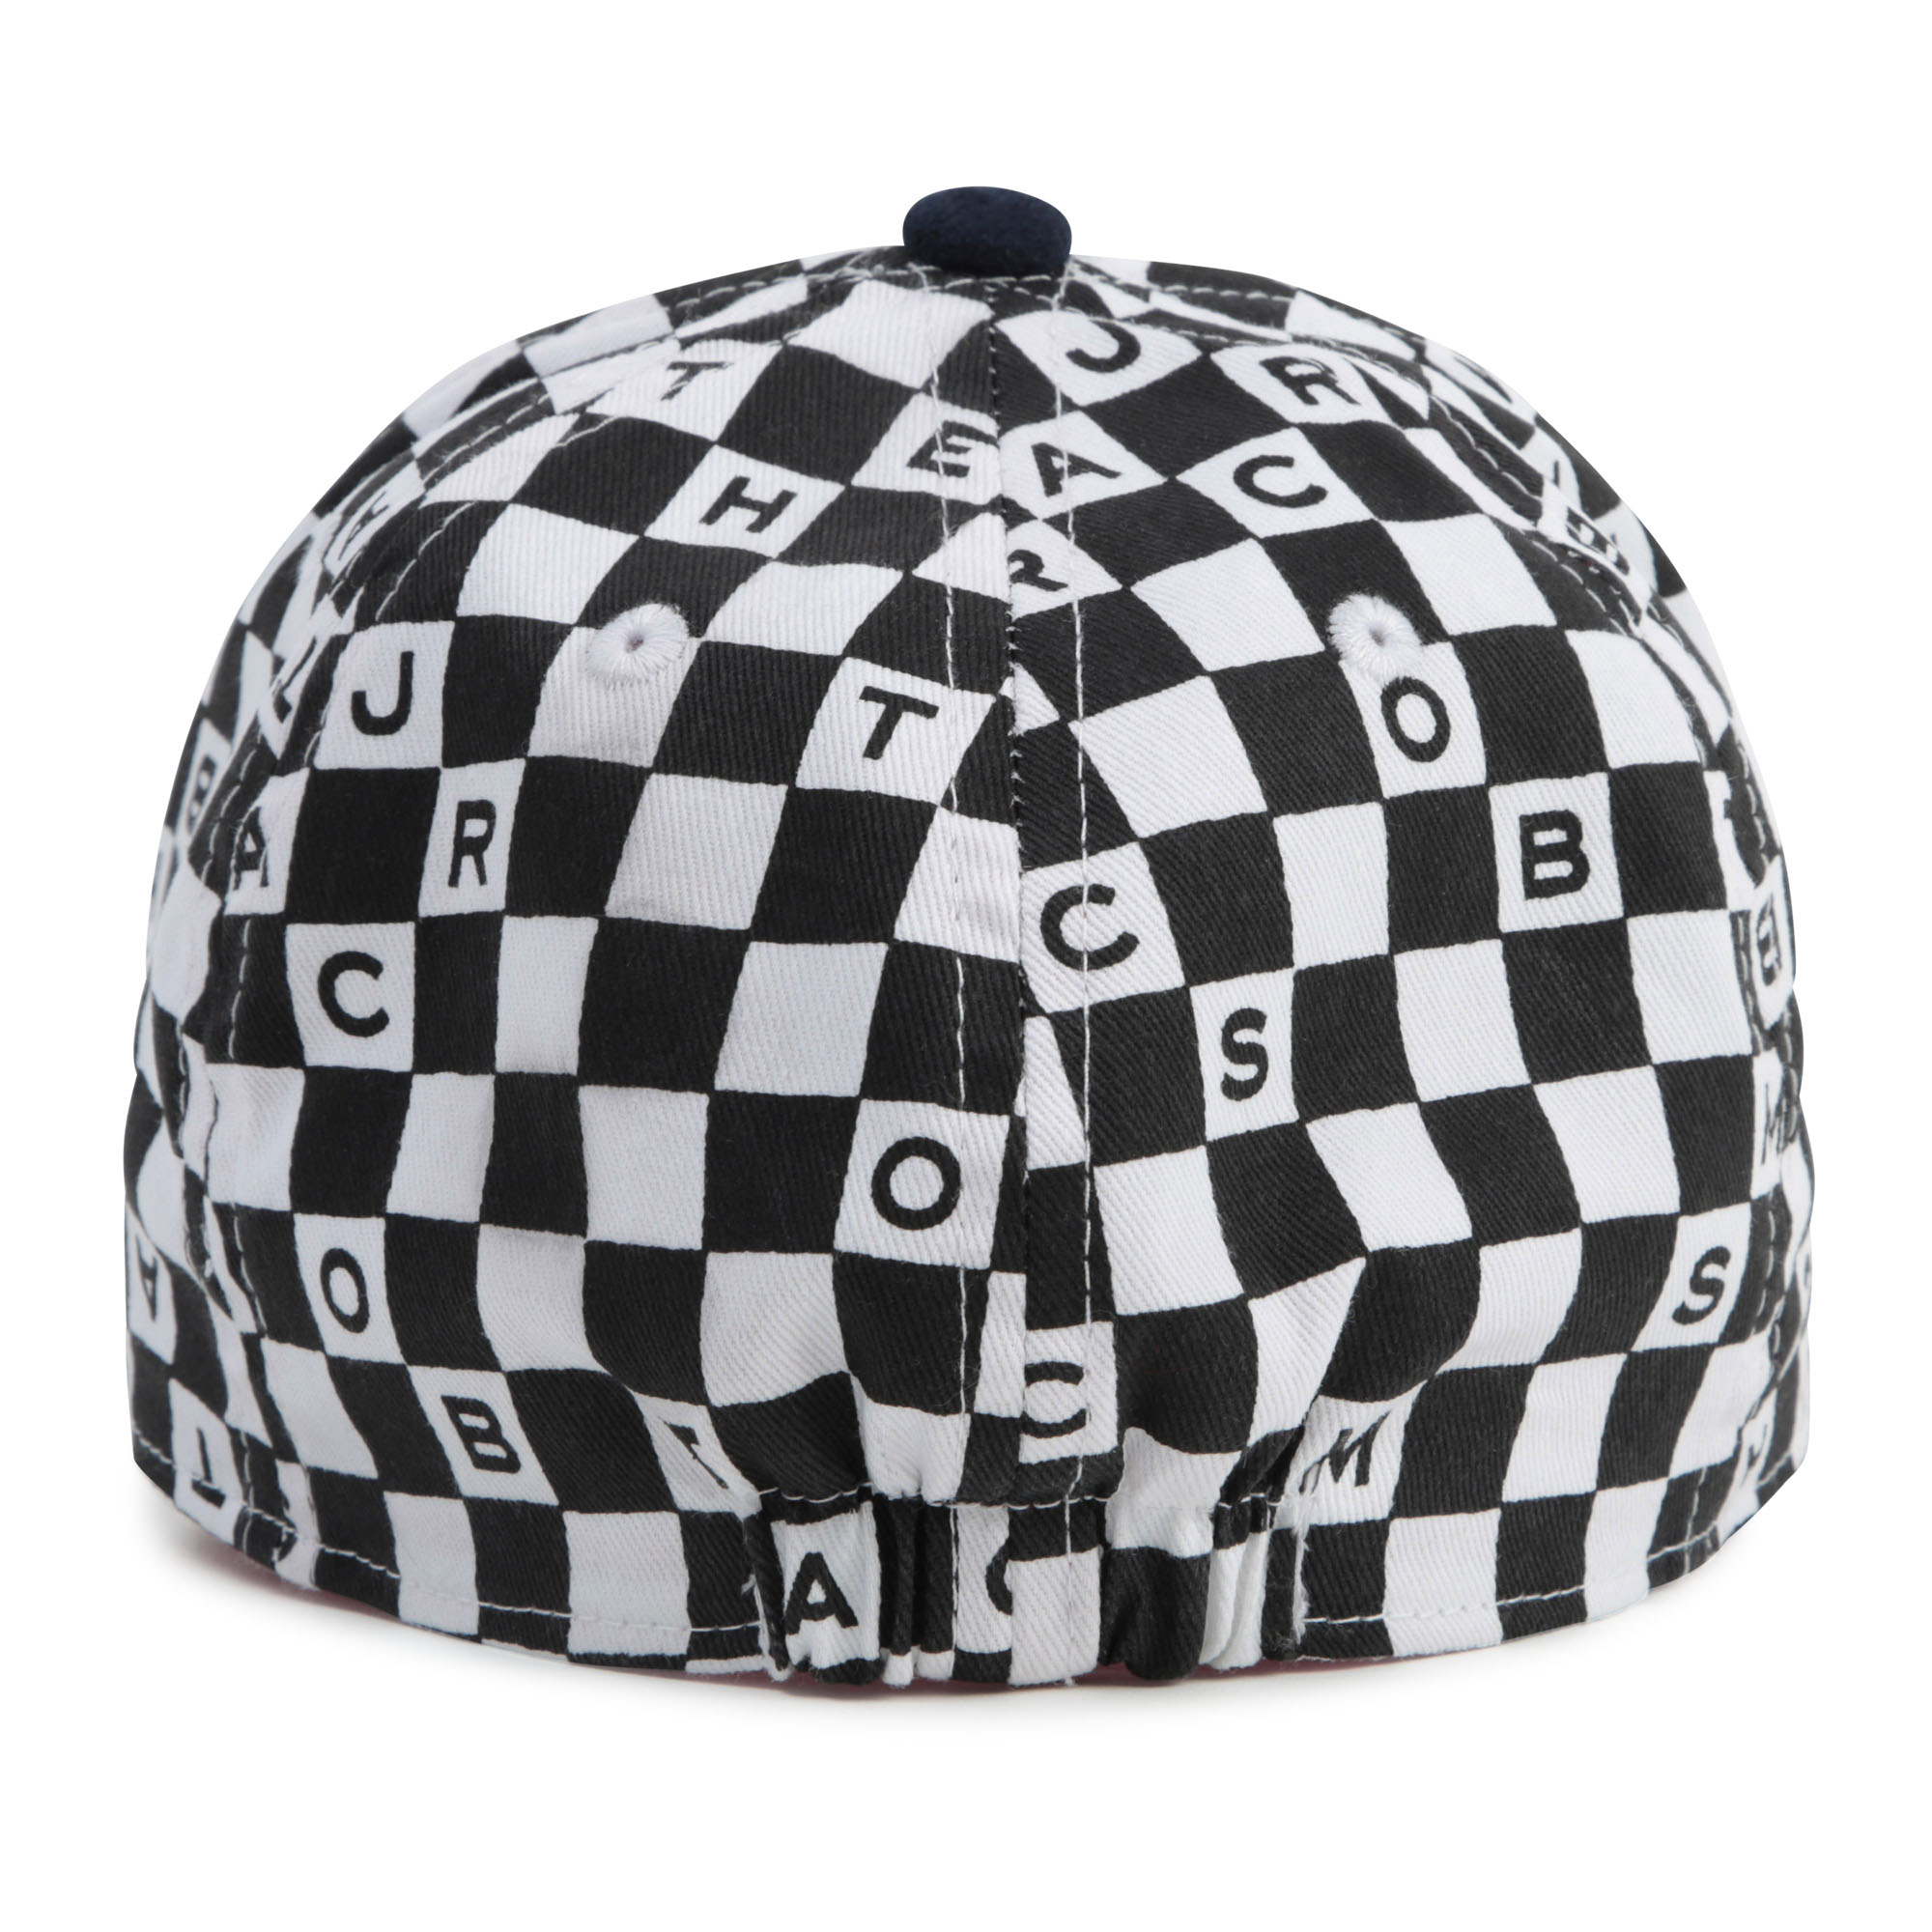 Gorra bimateria estampada THE MARC JACOBS para NIÑO